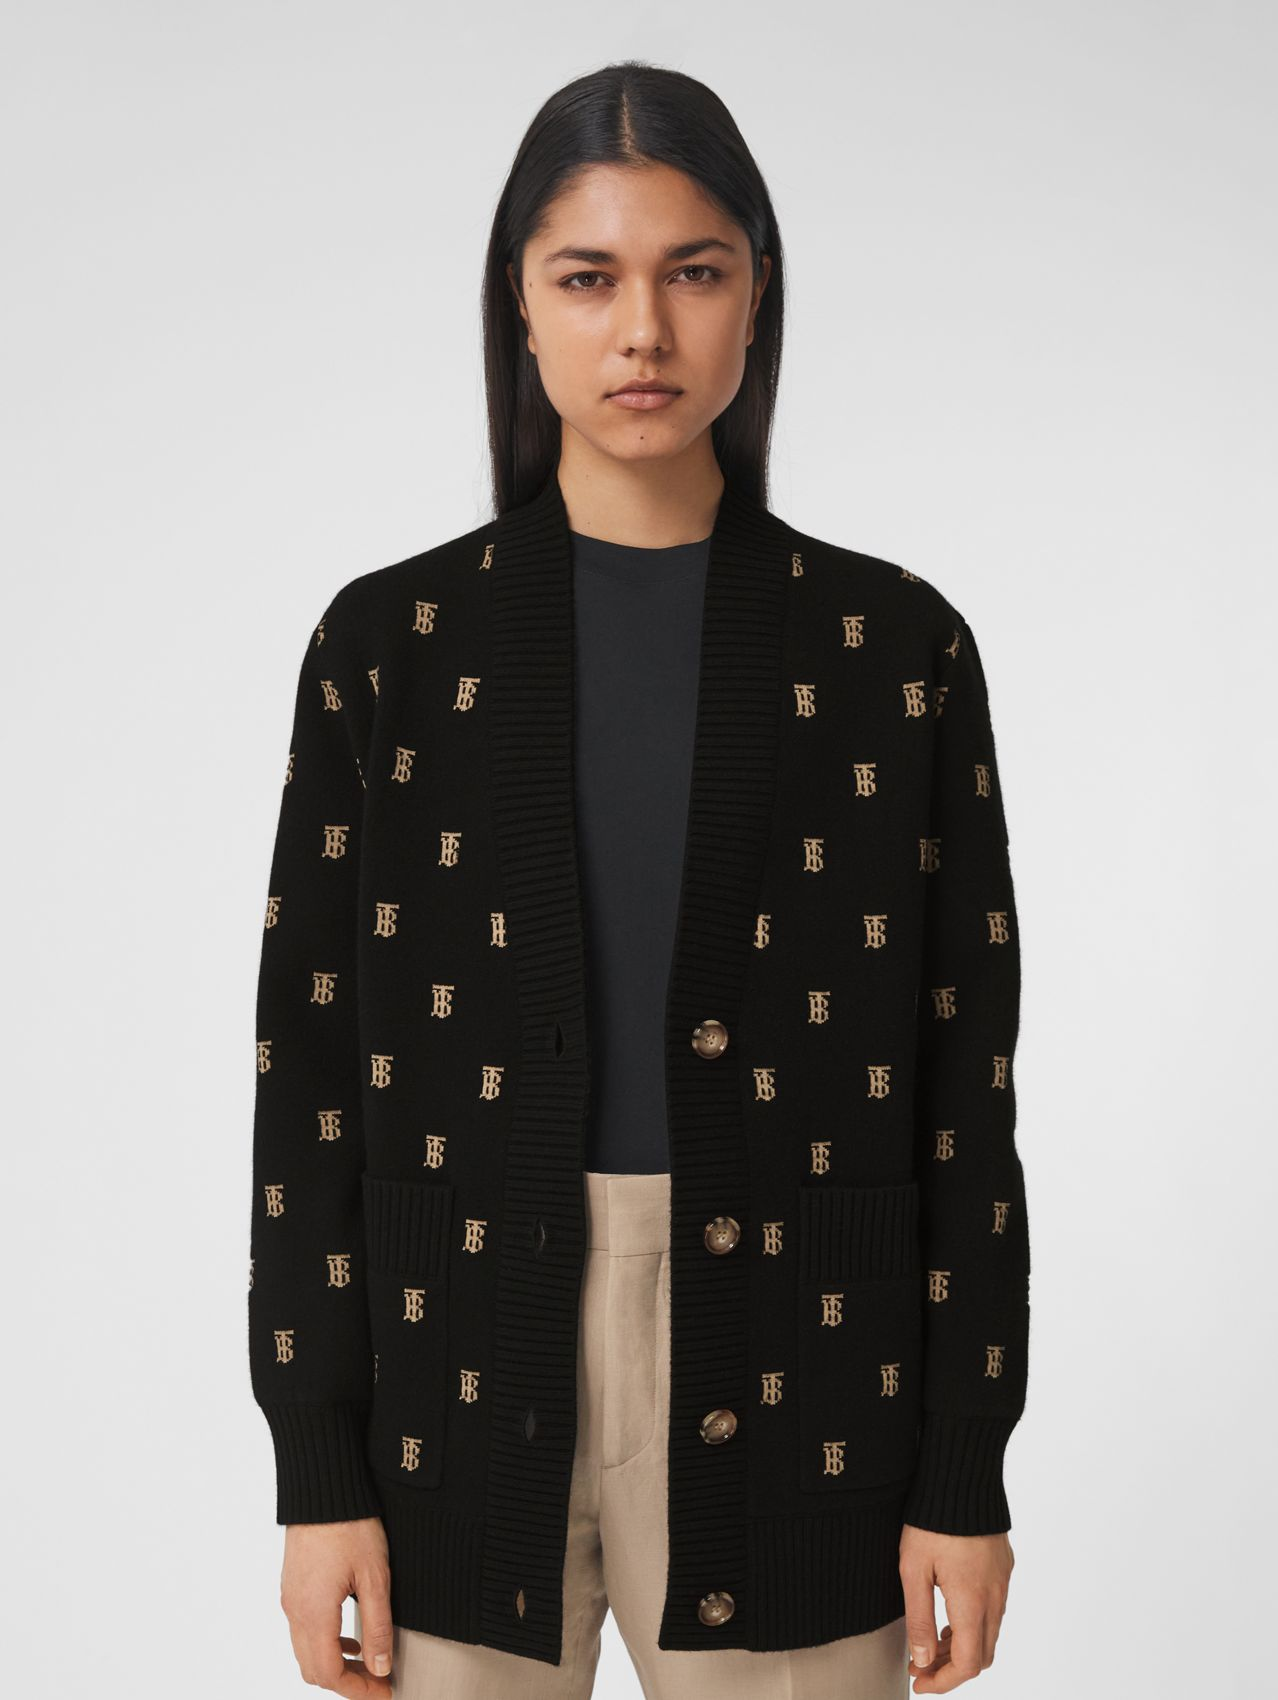 Monogram Wool Cashmere Blend Oversized Cardigan in Black